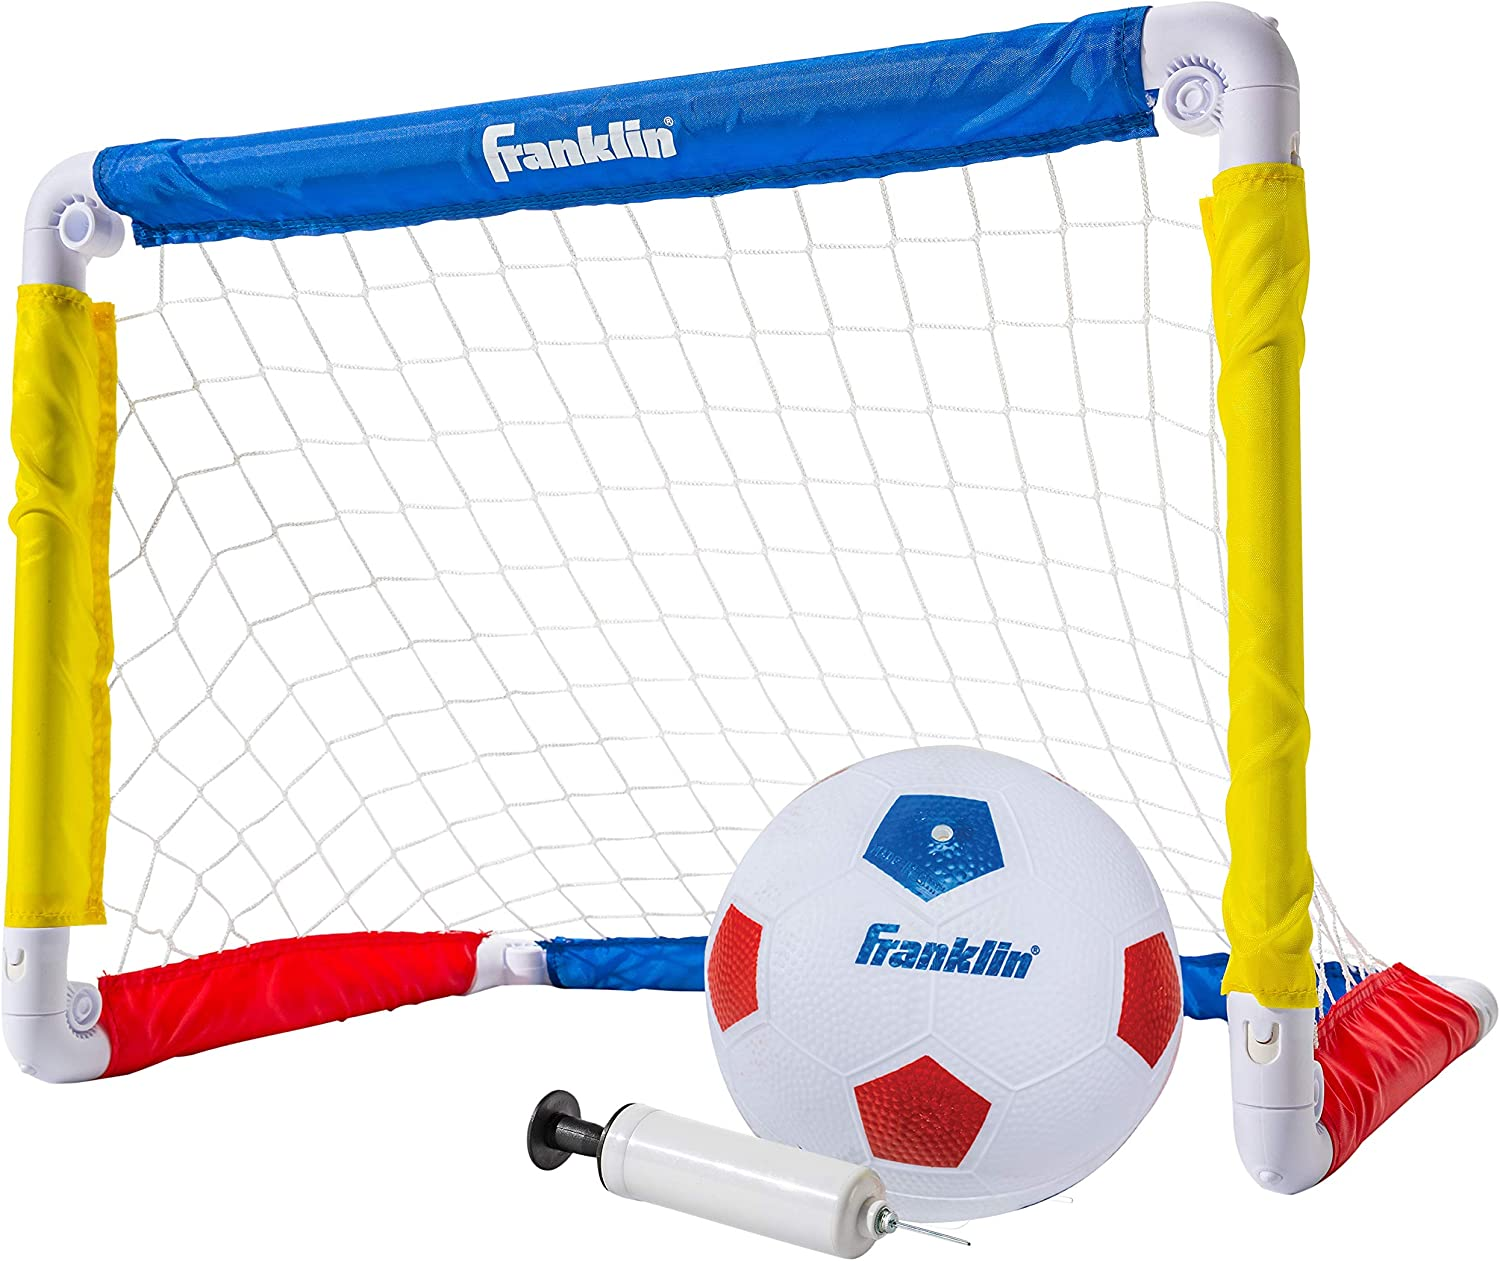 "Franklin Sports Kids Mini Soccer Goal Set - Backyard/Indoor Mini Net and Ball Set with Pump - Portable Folding Youth Soccer Goal Set - 24"" x 16"": Toys & Games"